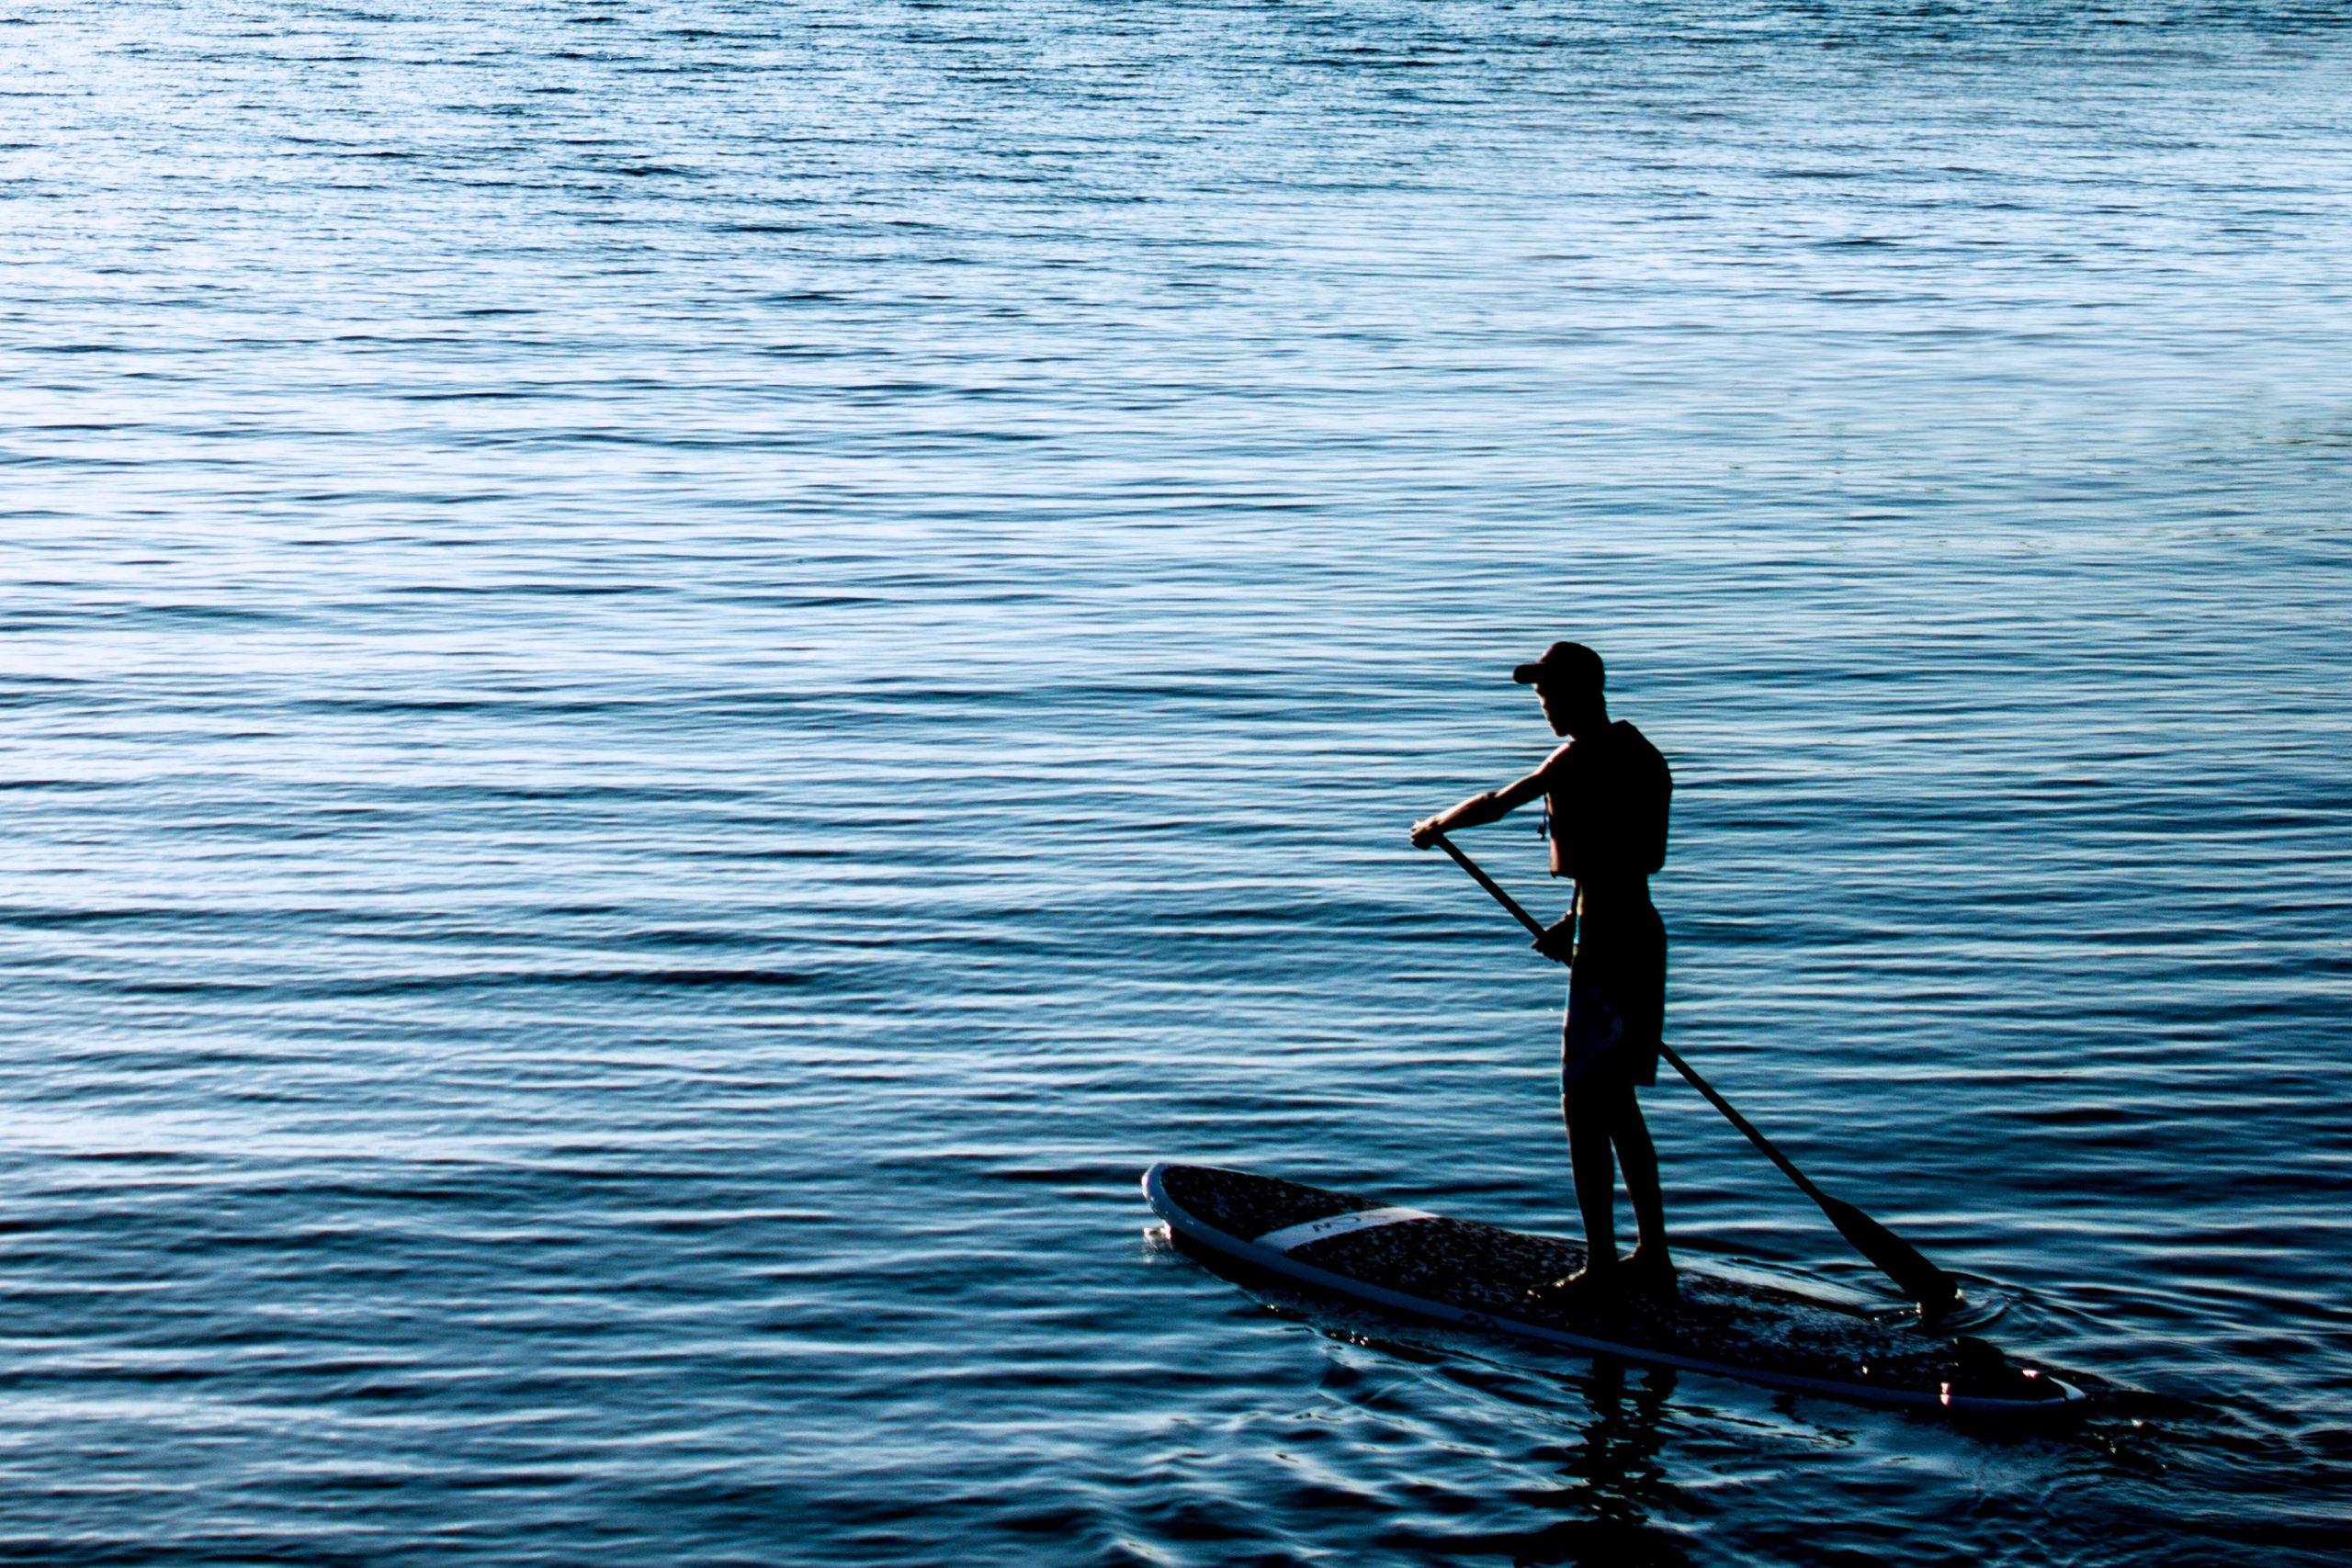 SUP Image by Brian Tucker from Pixabay